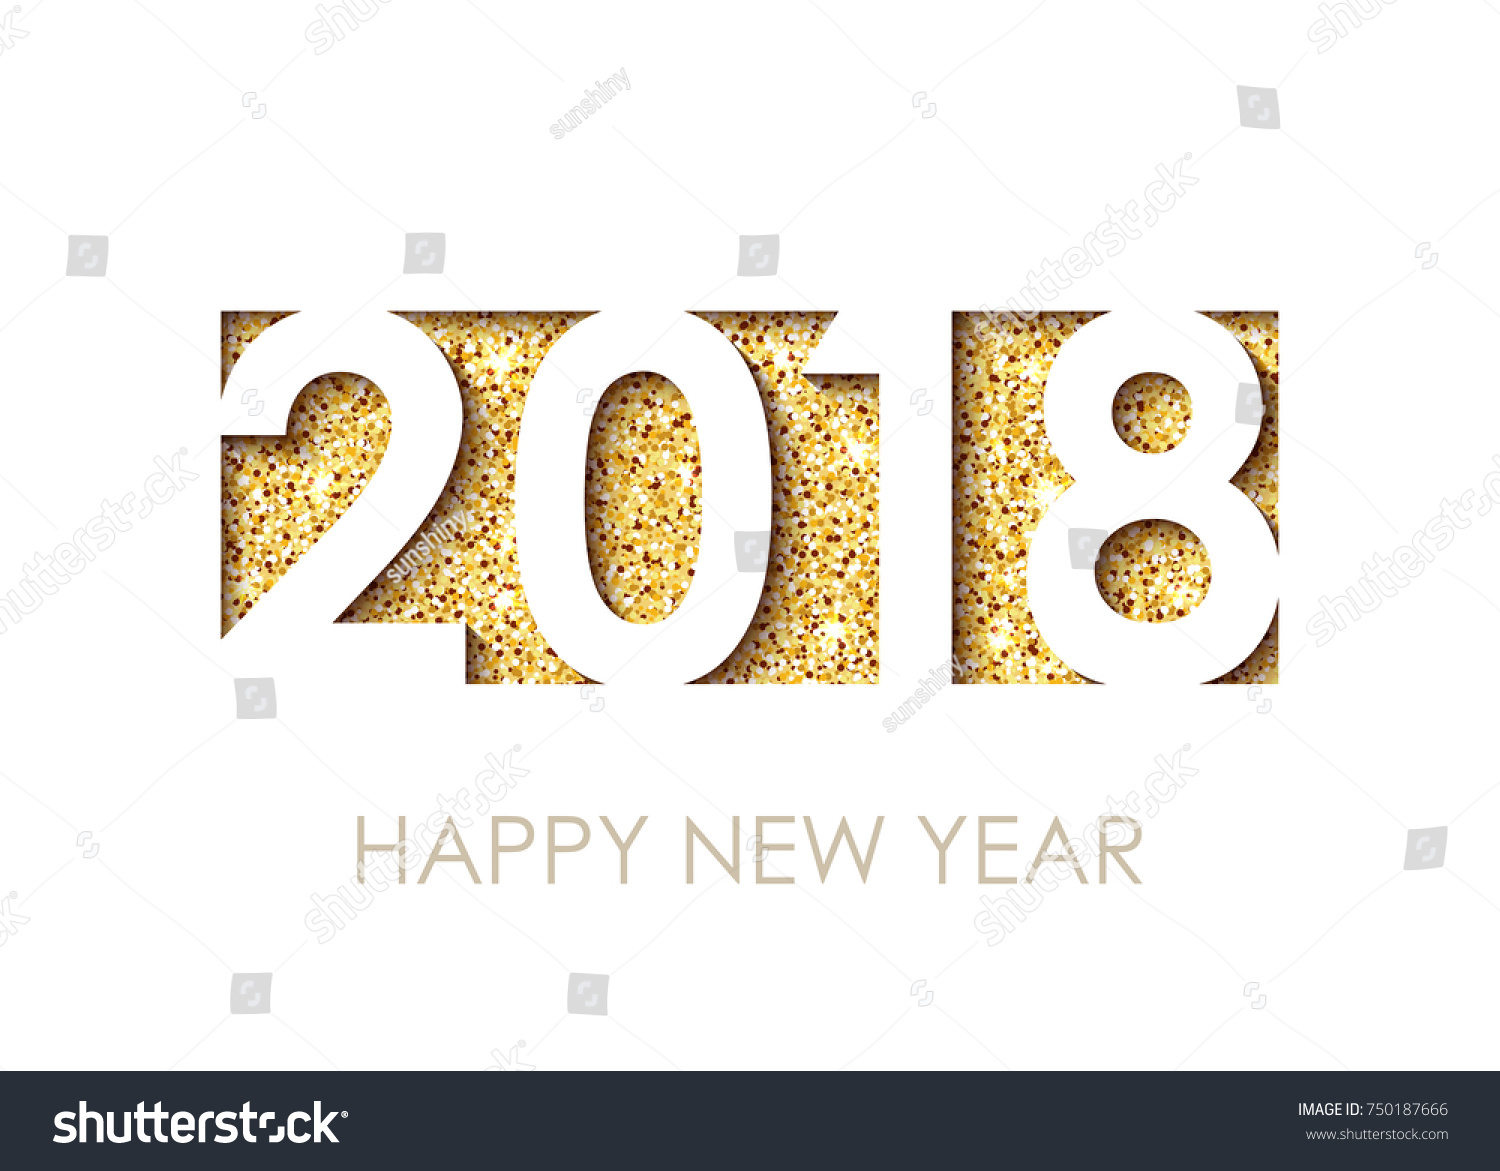 2018 happy new year text greeting stock vector 750187666 shutterstock 2018 happy new year text for greeting card calendar invitation white background with kristyandbryce Images